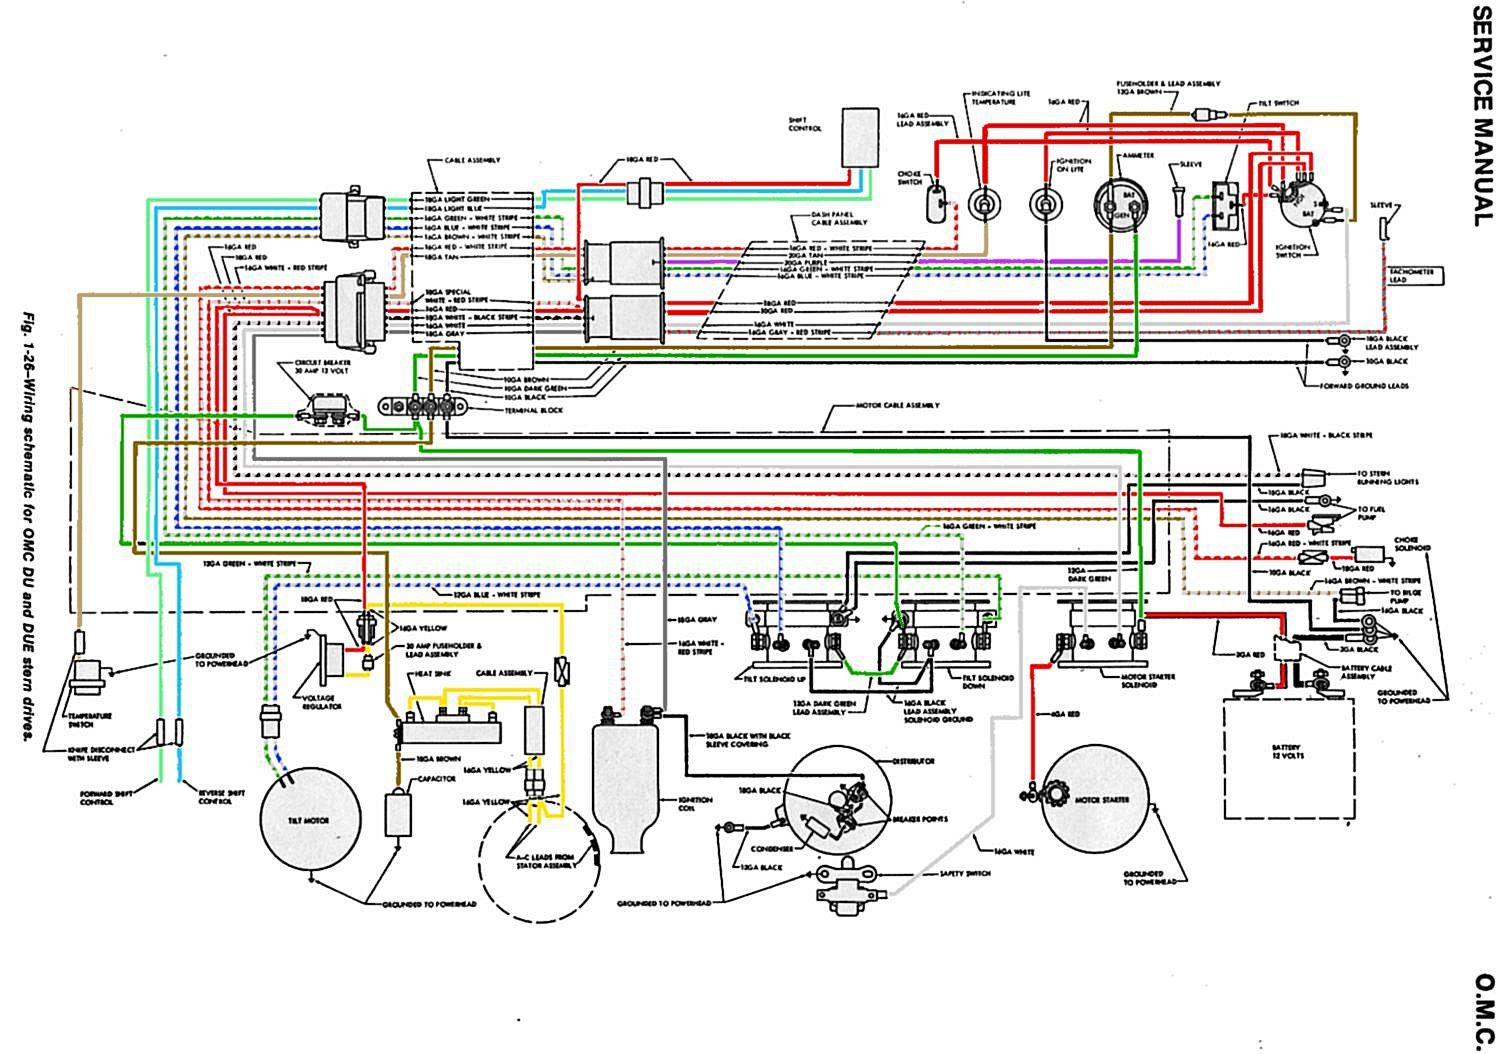 Omc Wiring Harness - Wiring Diagram Schematics on omc 4.3 hose, omc 4.3 oil cooler, omc cobra 4.3 battery connections, omc 4.3 manual, omc cobra 4.3 electrical wiring, omc 4.3 engine,